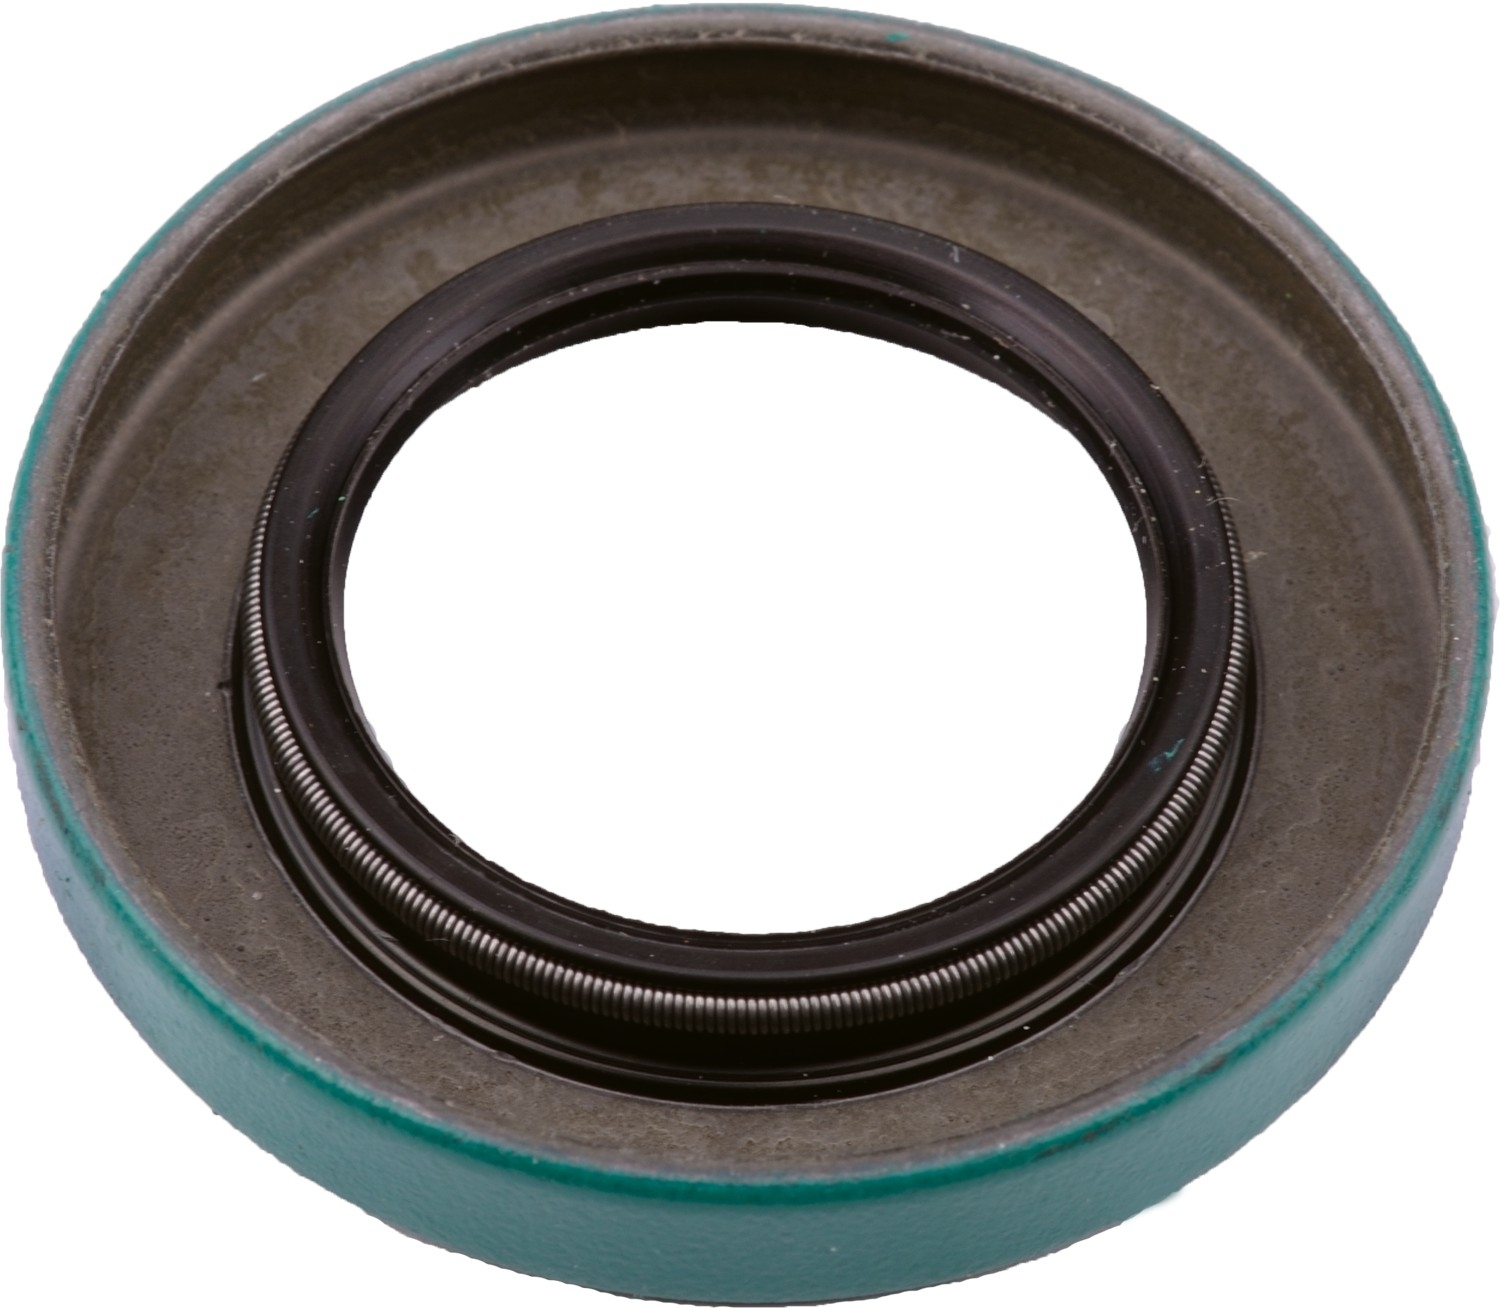 SKF (CHICAGO RAWHIDE) - Manual Trans Input Shaft Seal - SKF 9725